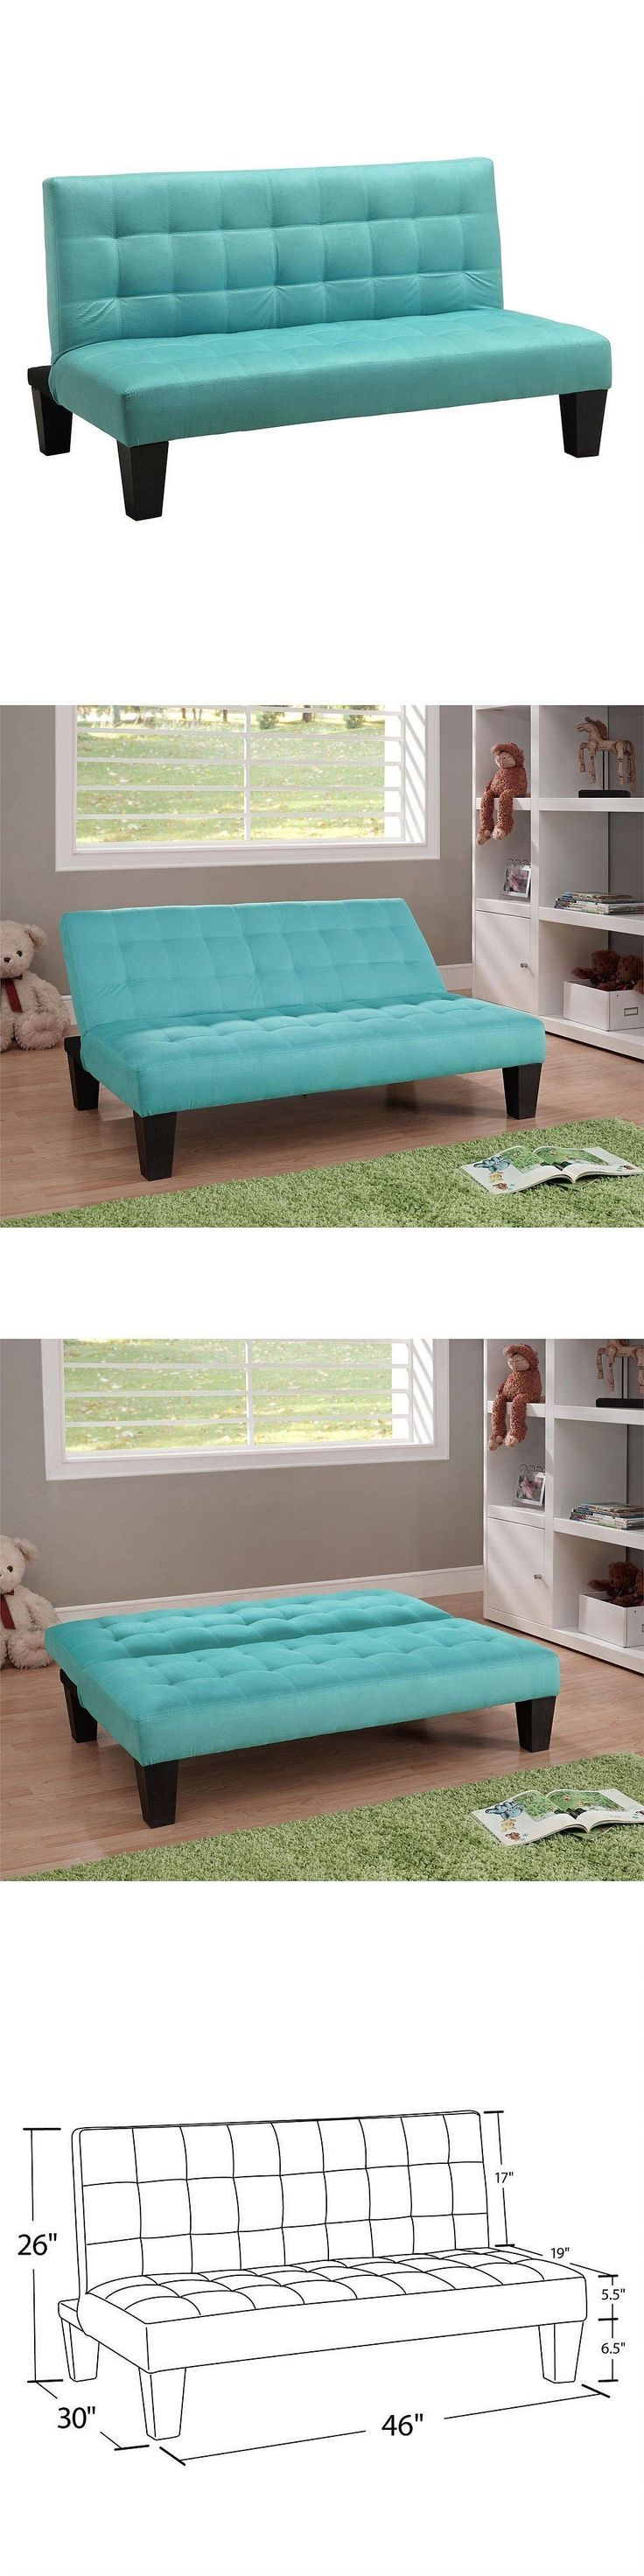 Get 20 Teal teens furniture ideas on Pinterest without signing up